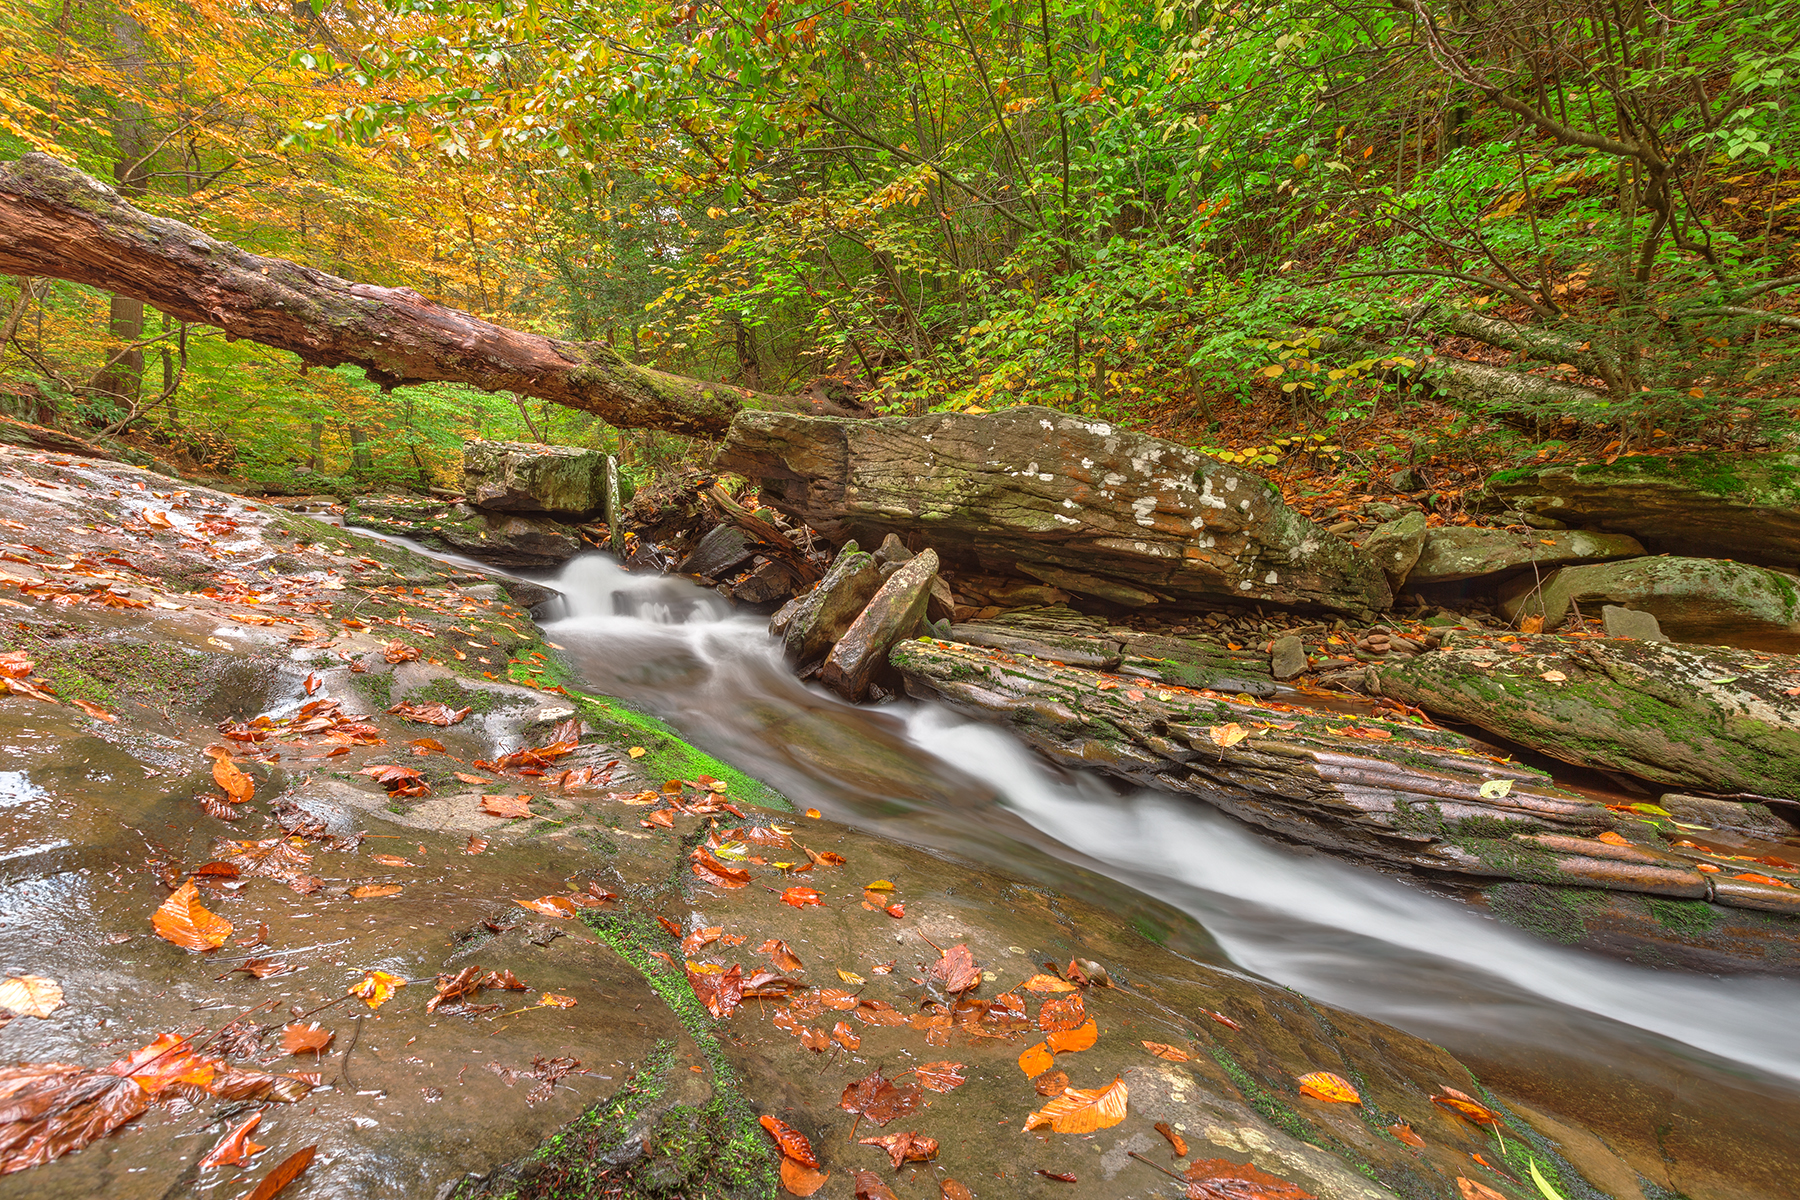 Ricketts Glen Autumn Stream - HDR, America, Park, Scenery, Scene, HQ Photo